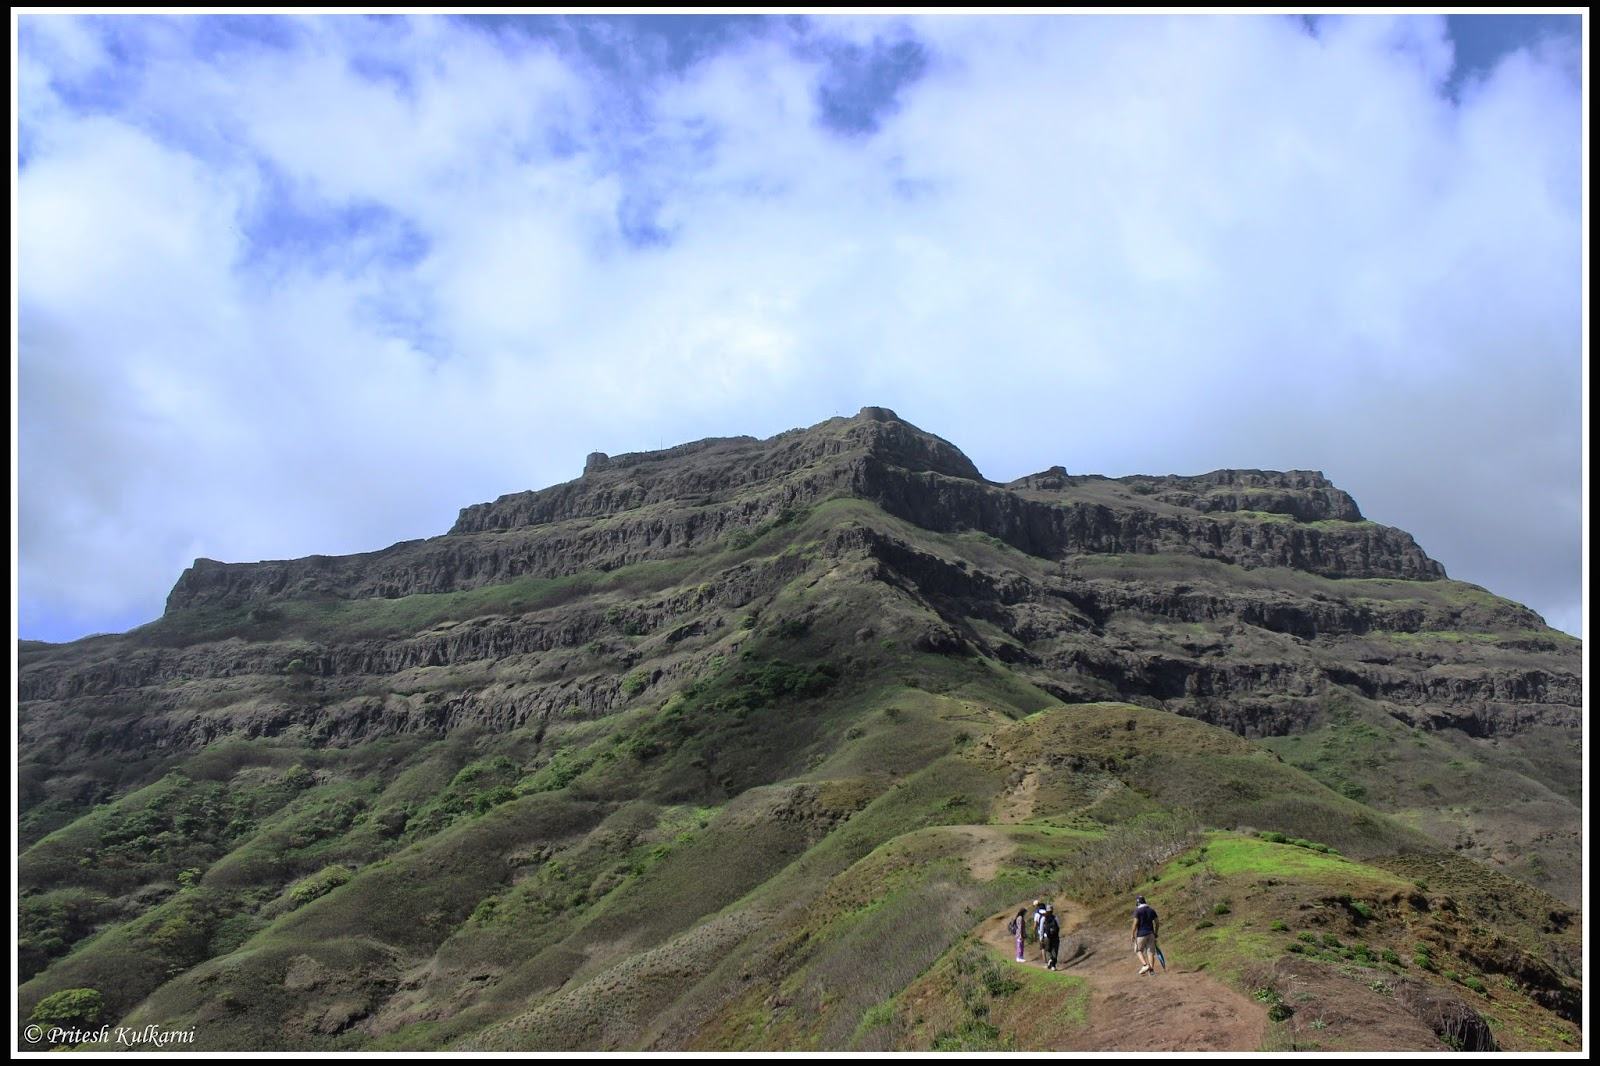 Torna Fort a.k.a. PrachandGad (Massive Fort)